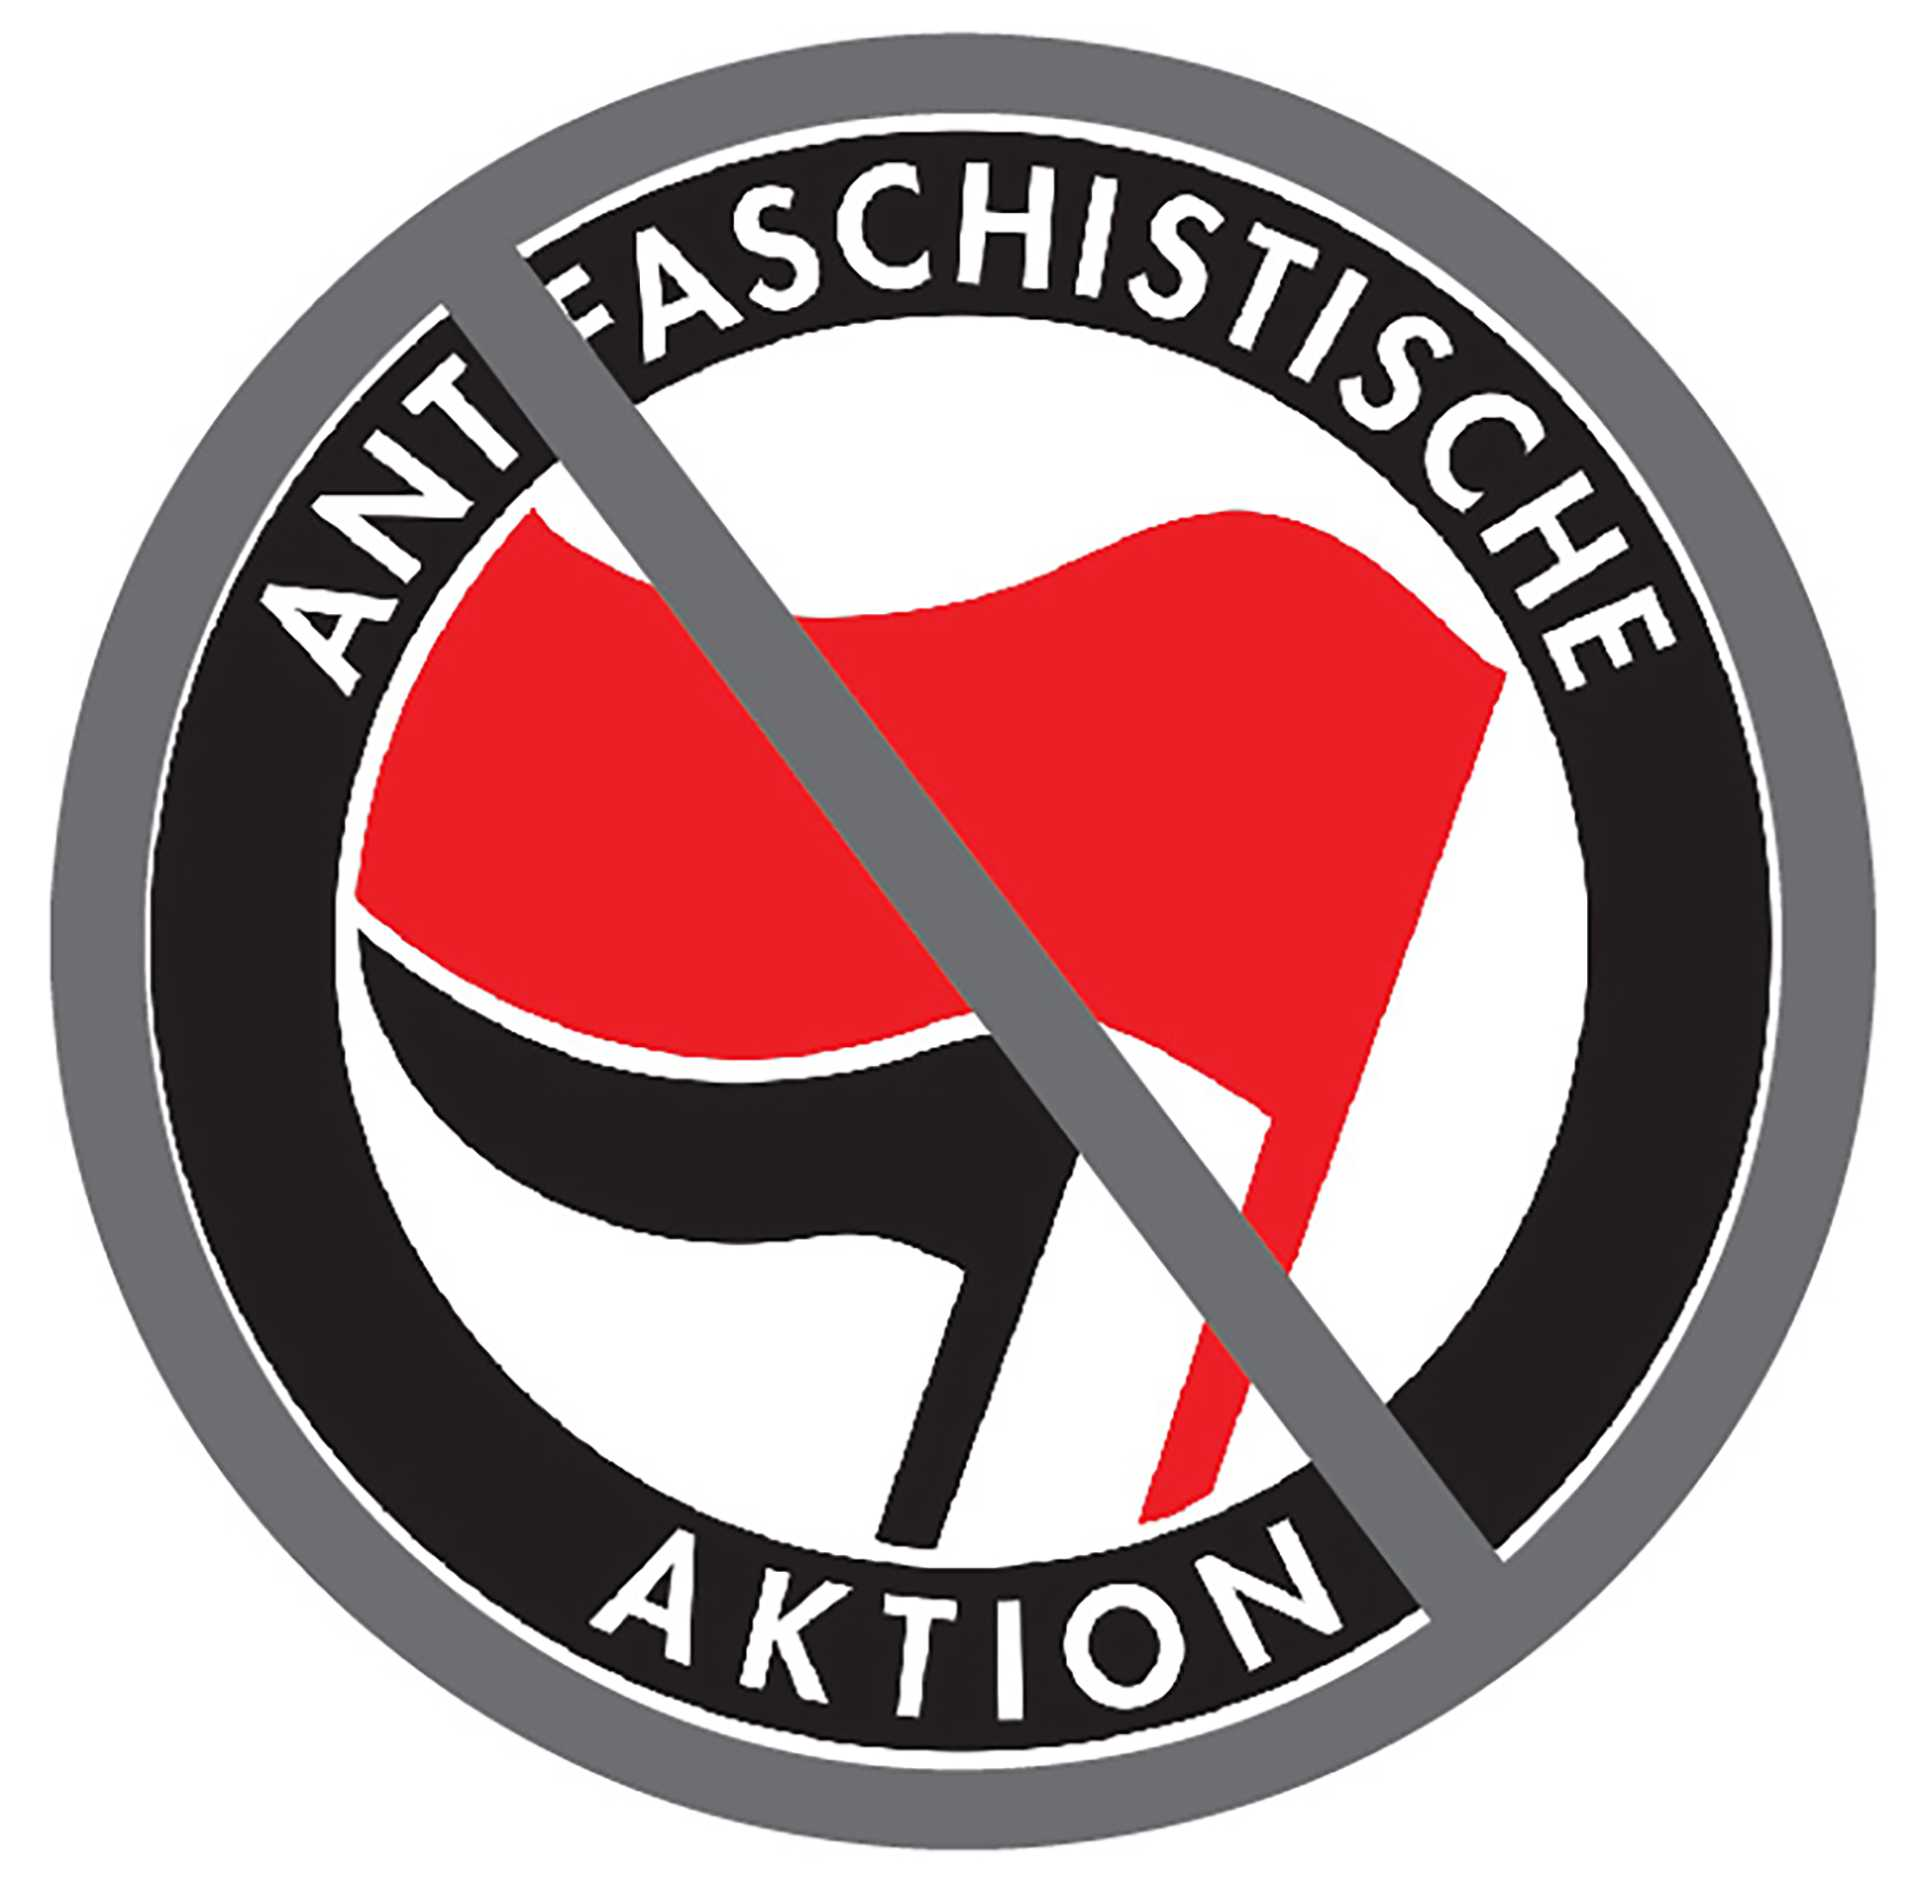 Antifa%3A+fighting+Nazis+with+violence